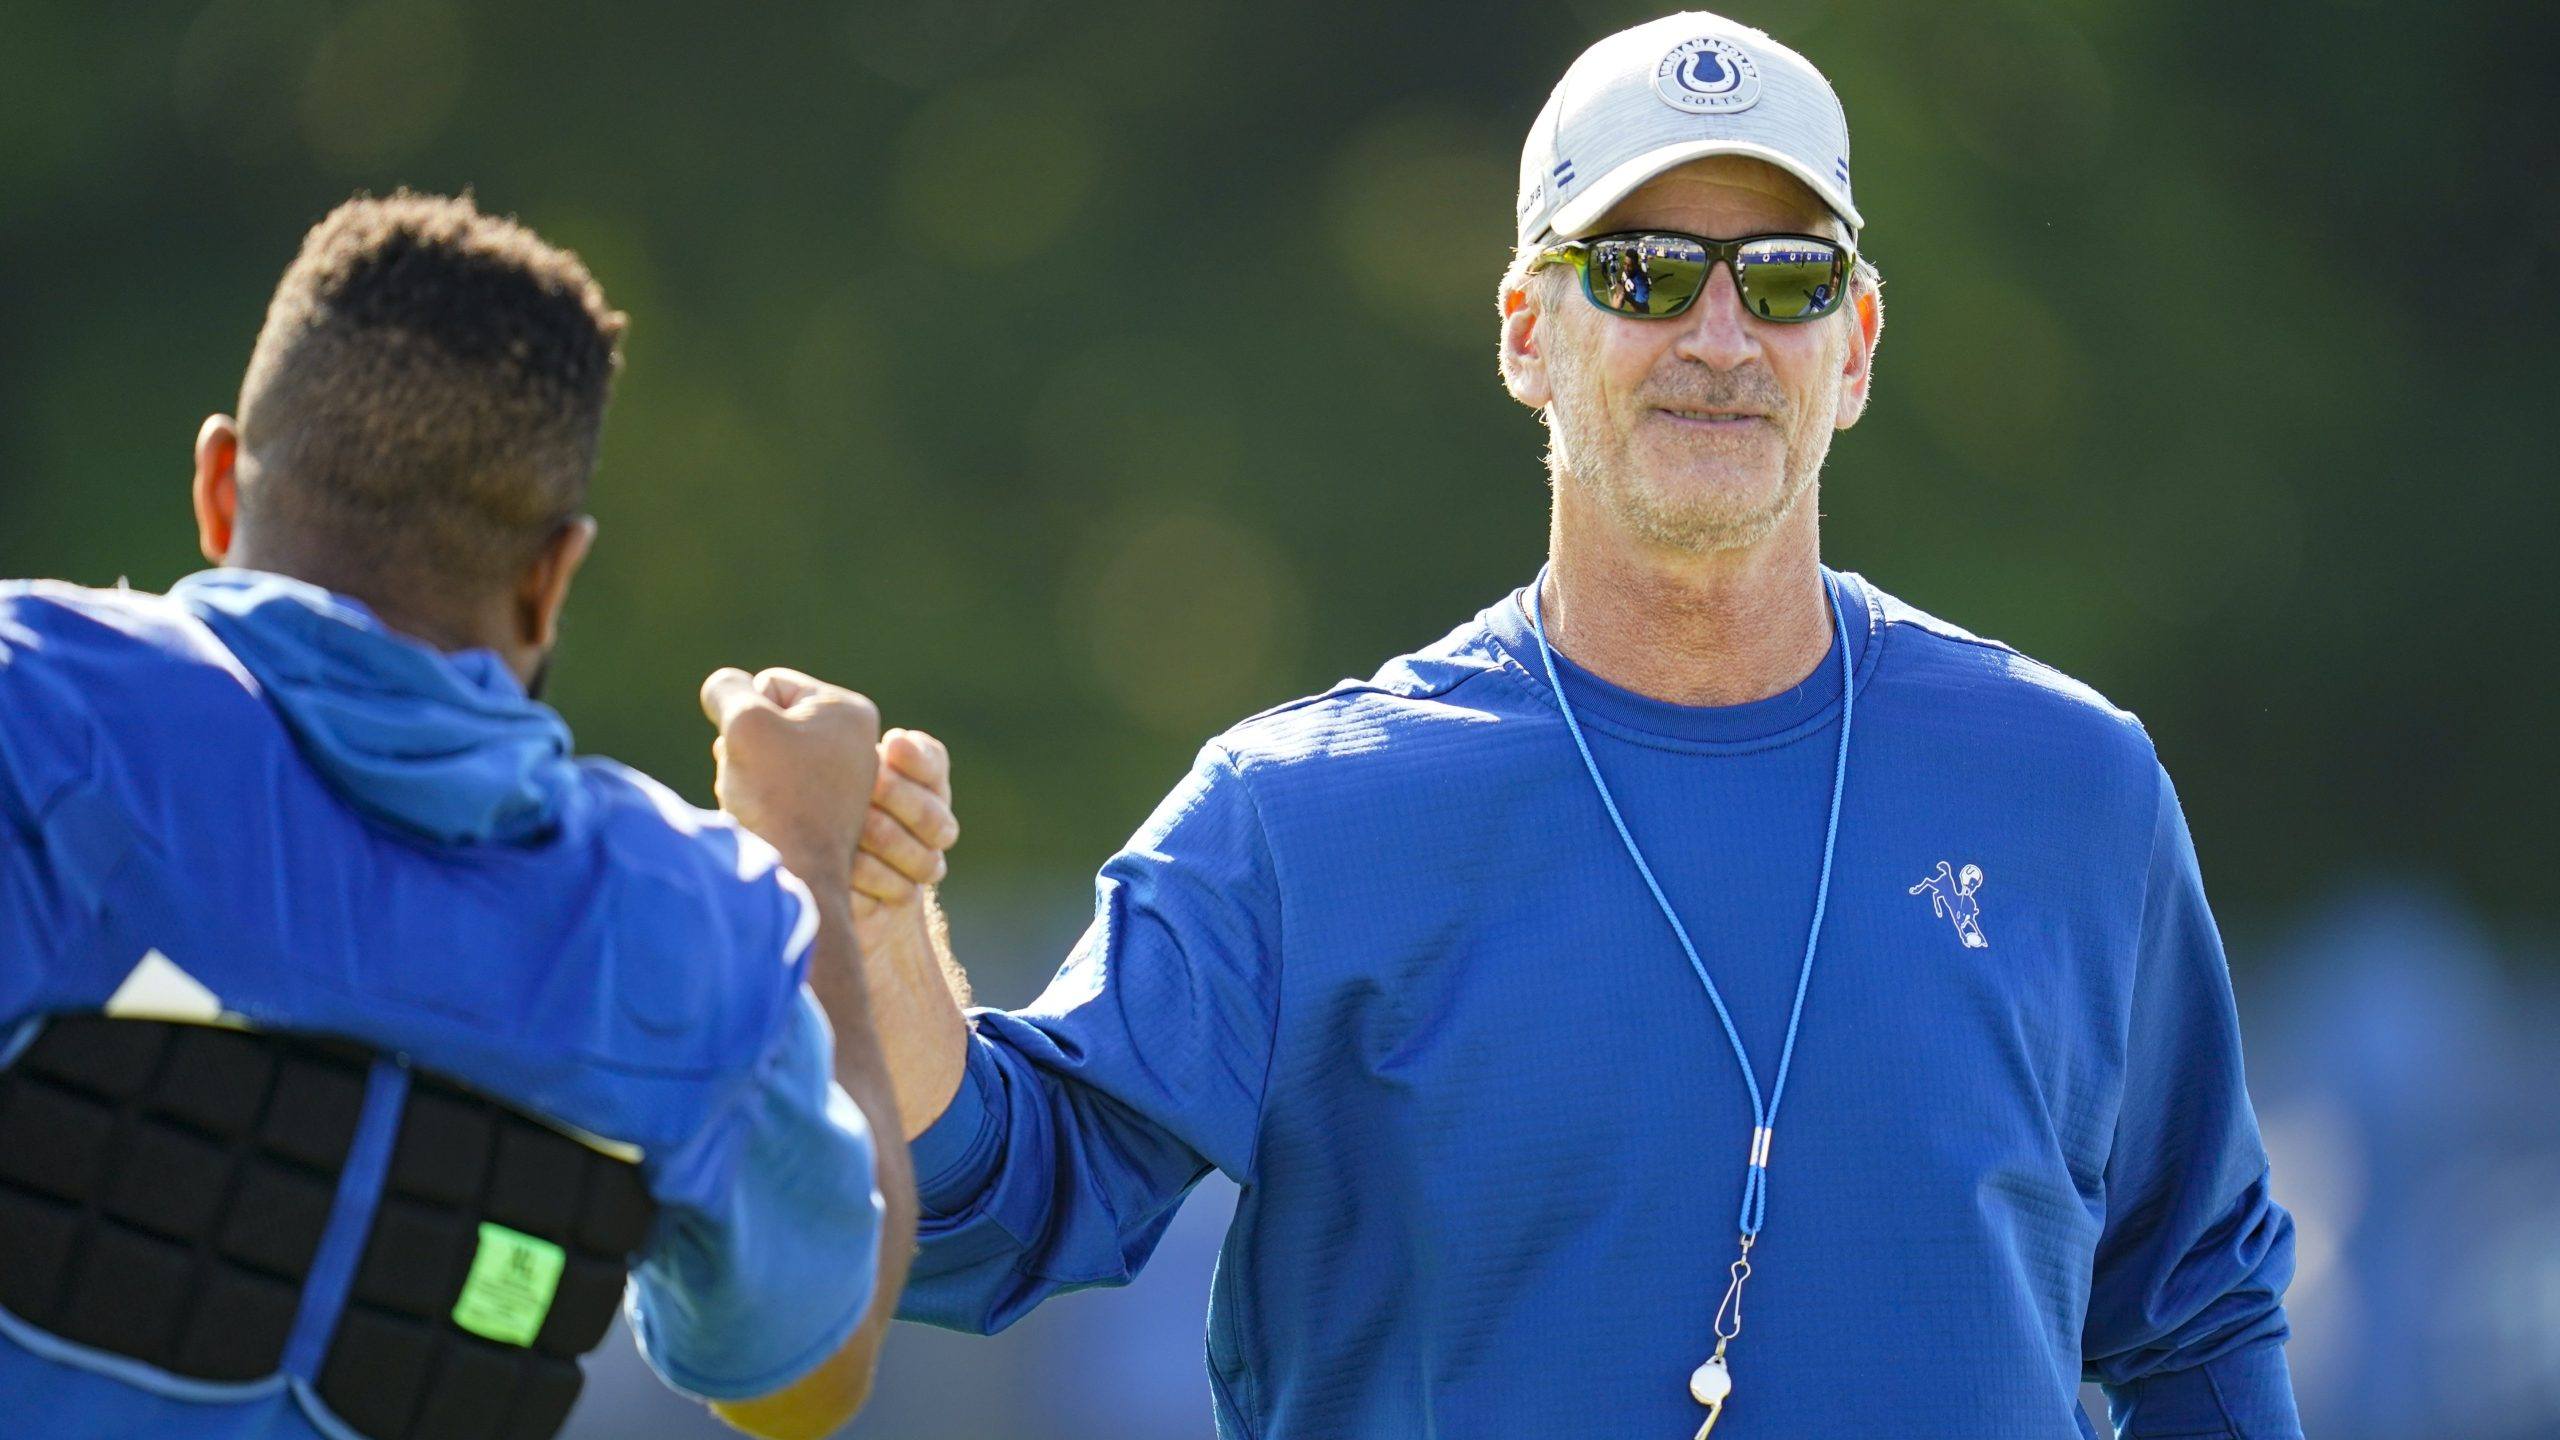 Colts Frank Reich